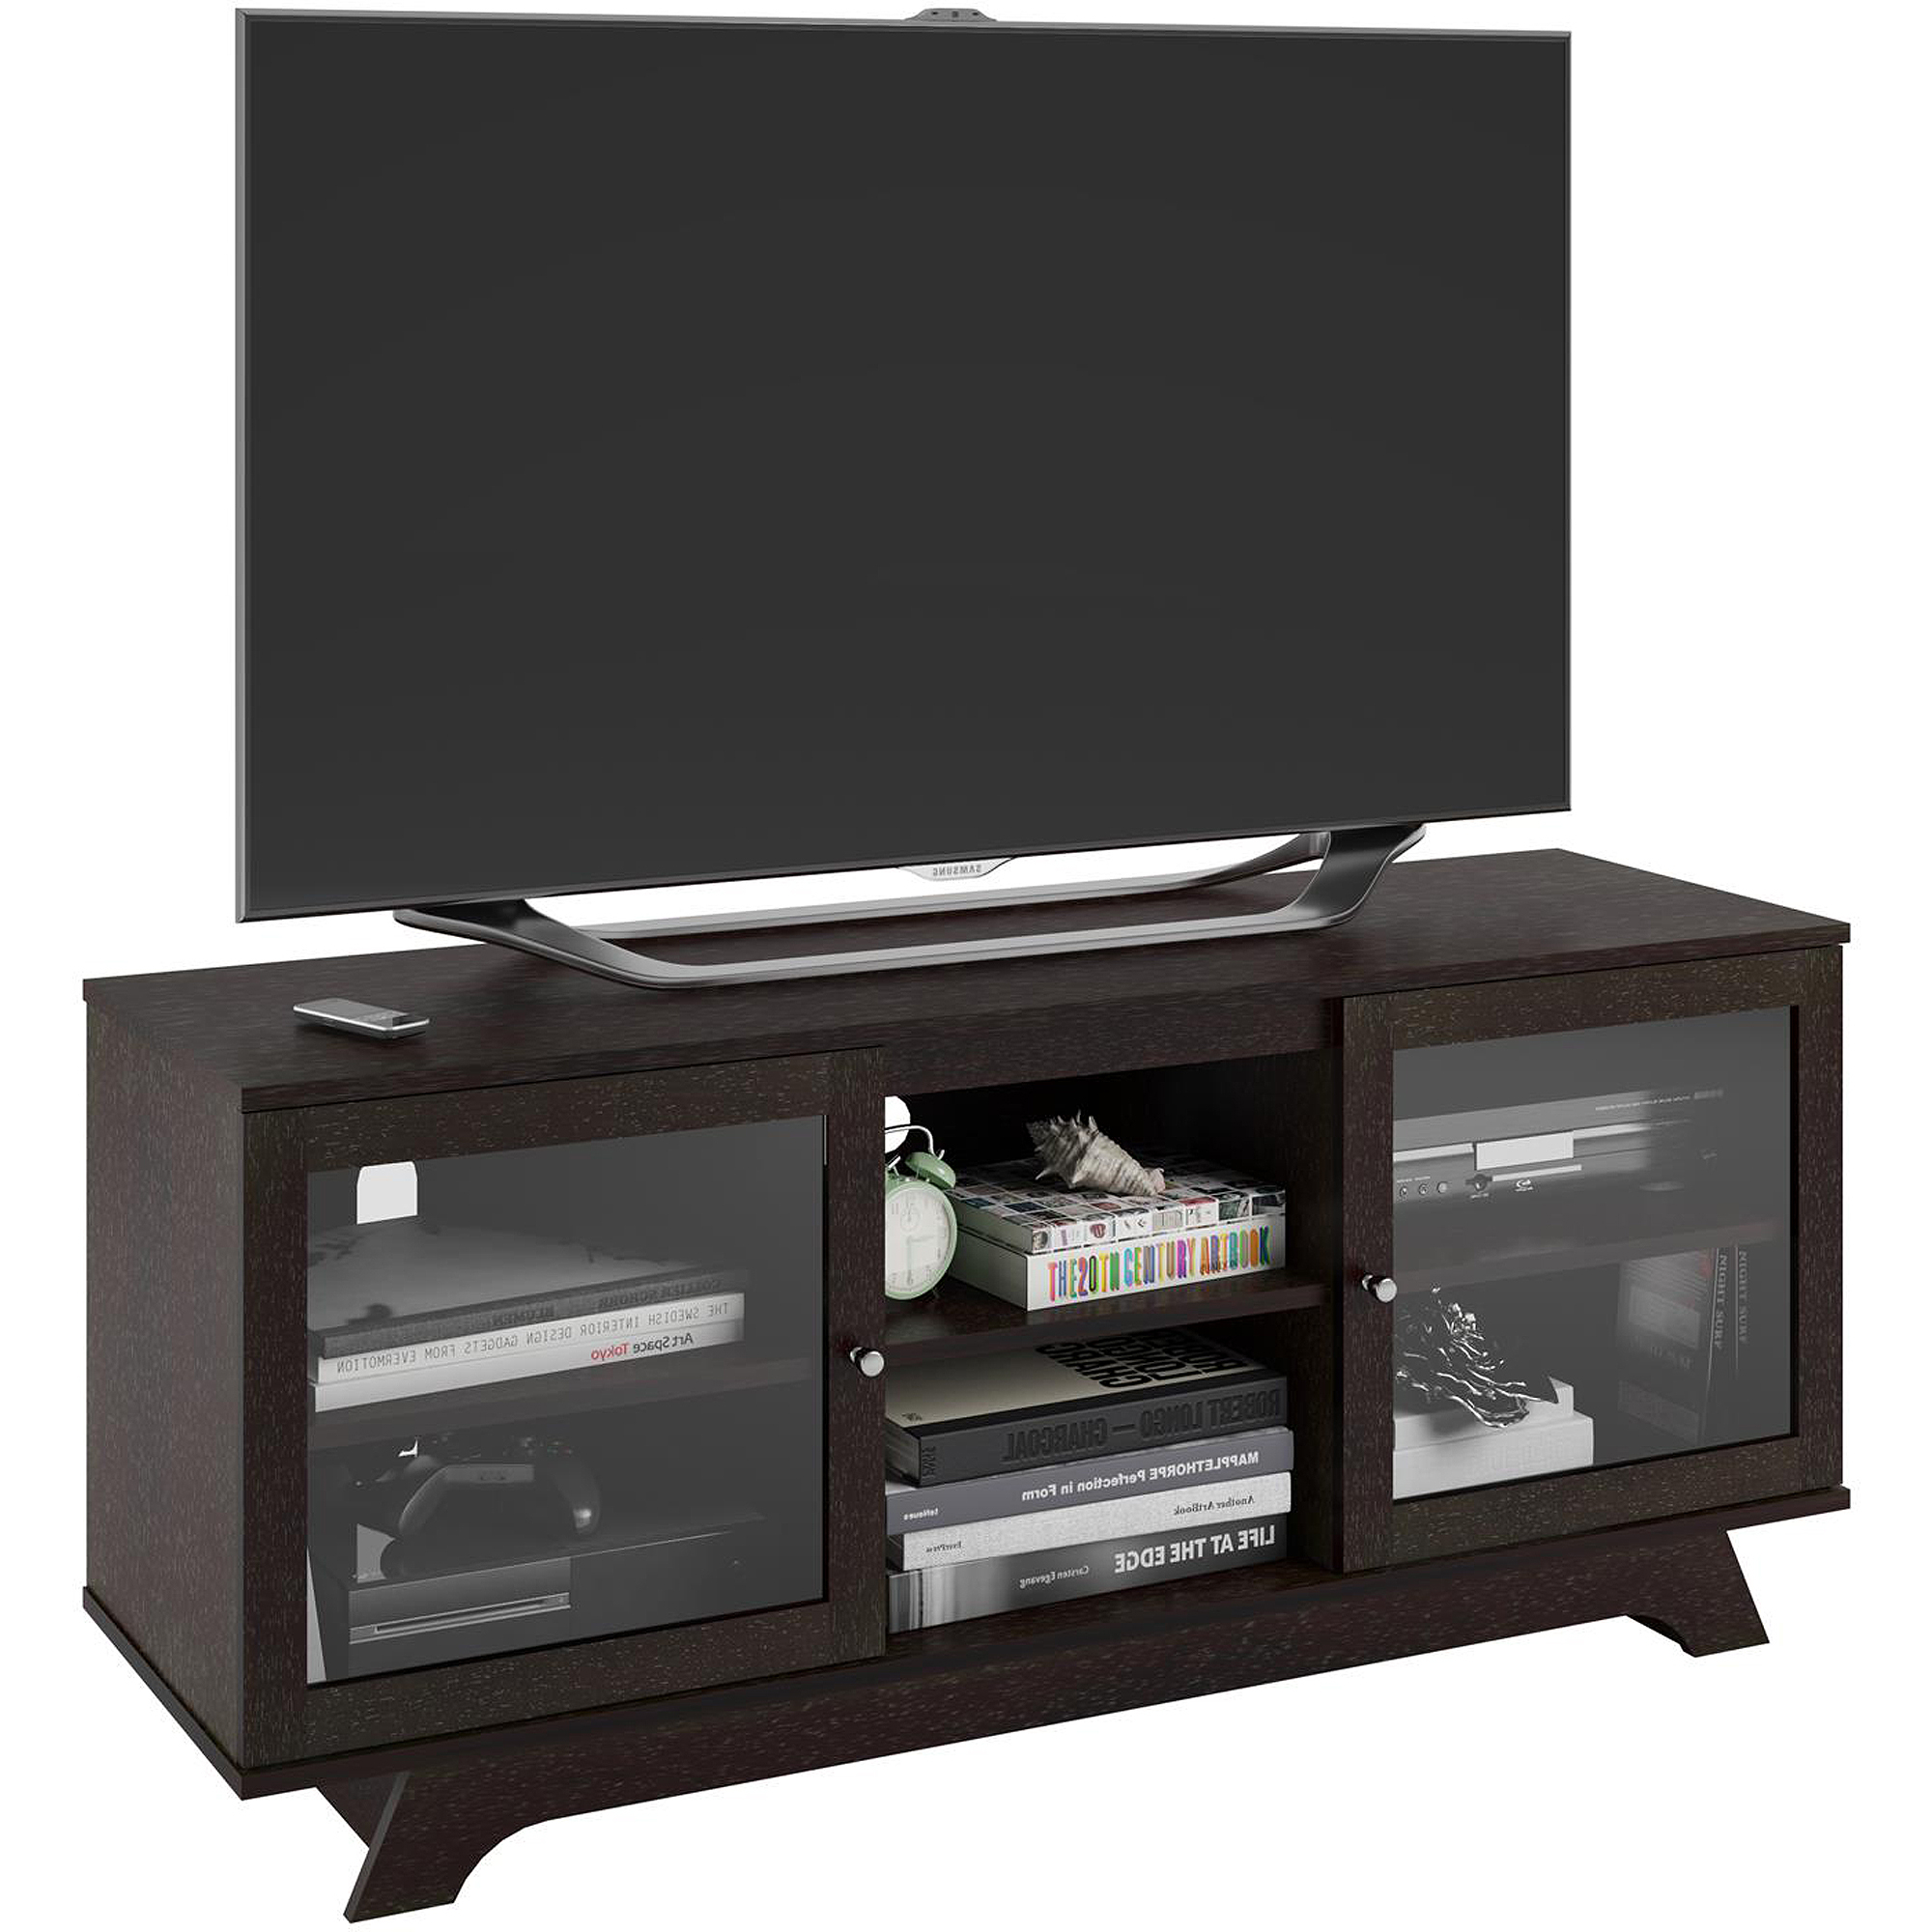 "Wooden Tv Cabinets With Glass Doors For 2018 Ameriwood Home Englewood Tv Stand For Tvs Up To 55"", Espresso (View 14 of 20)"